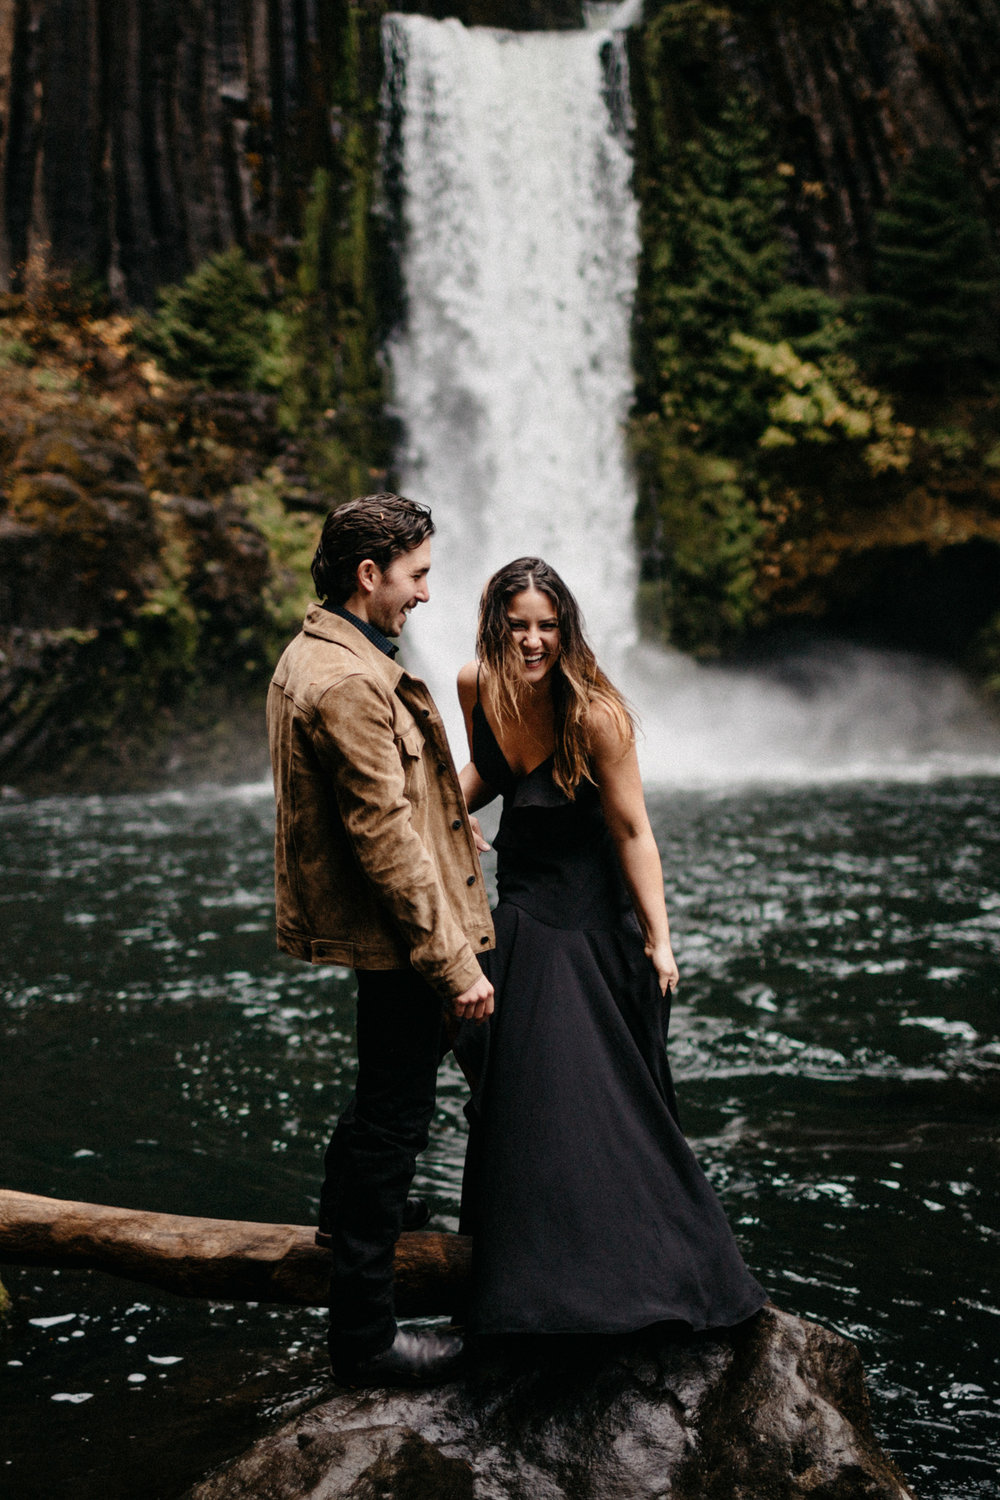 Toketee Falls Engagements by Kandice Breinholt-7.jpg